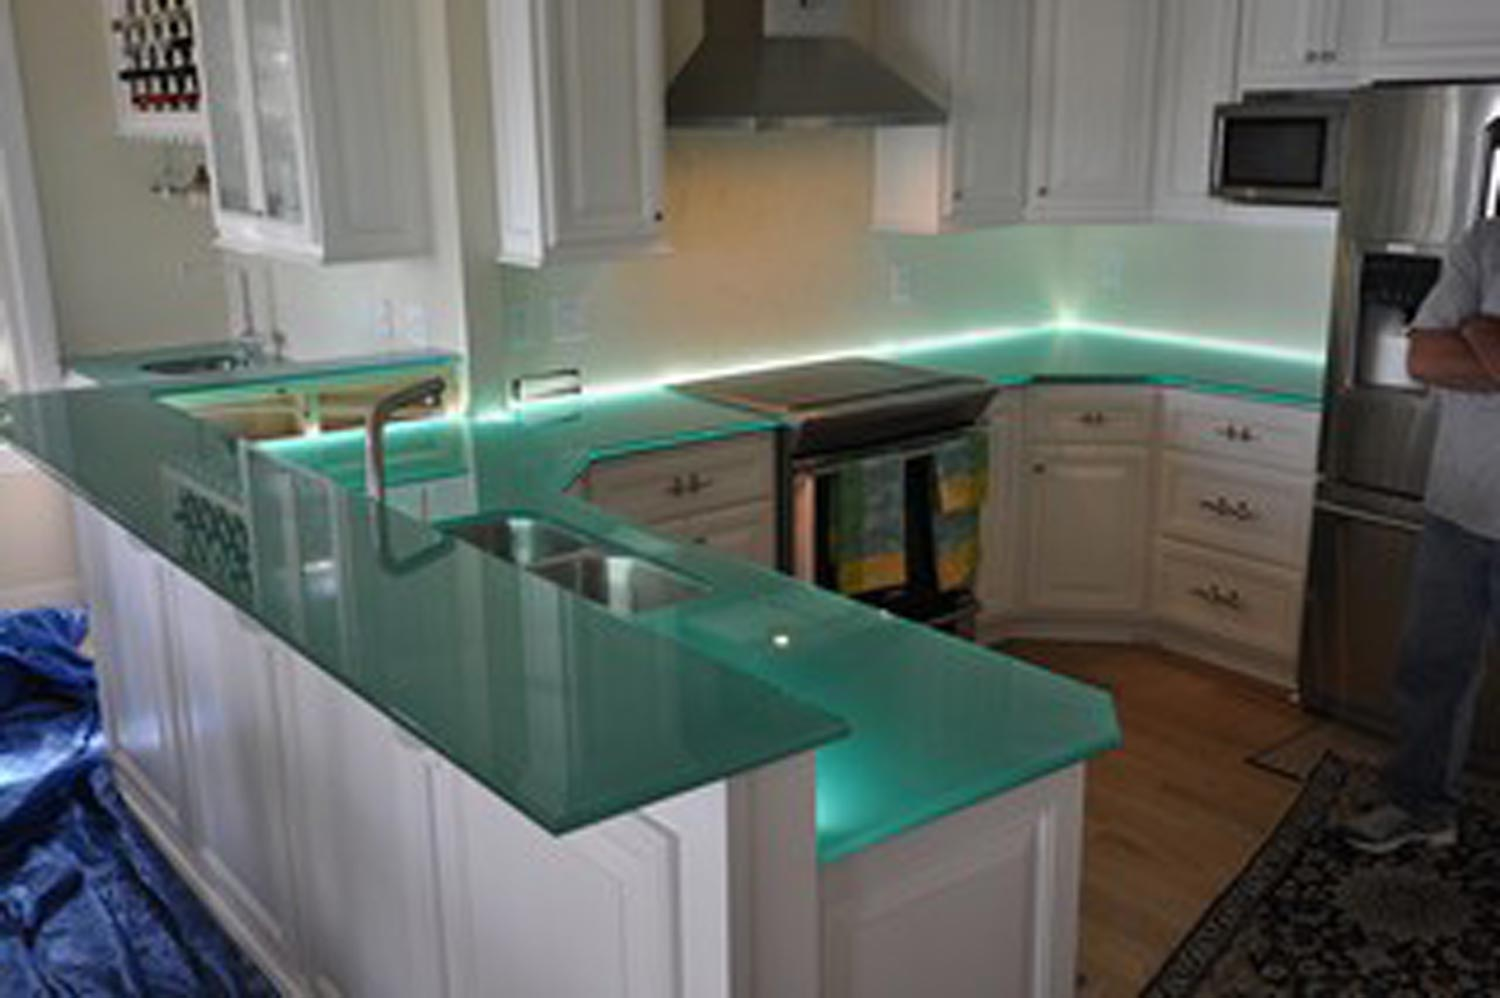 Kitchen Countertops Of Images Of Granite Marble Quartz Countertops Richmond Va